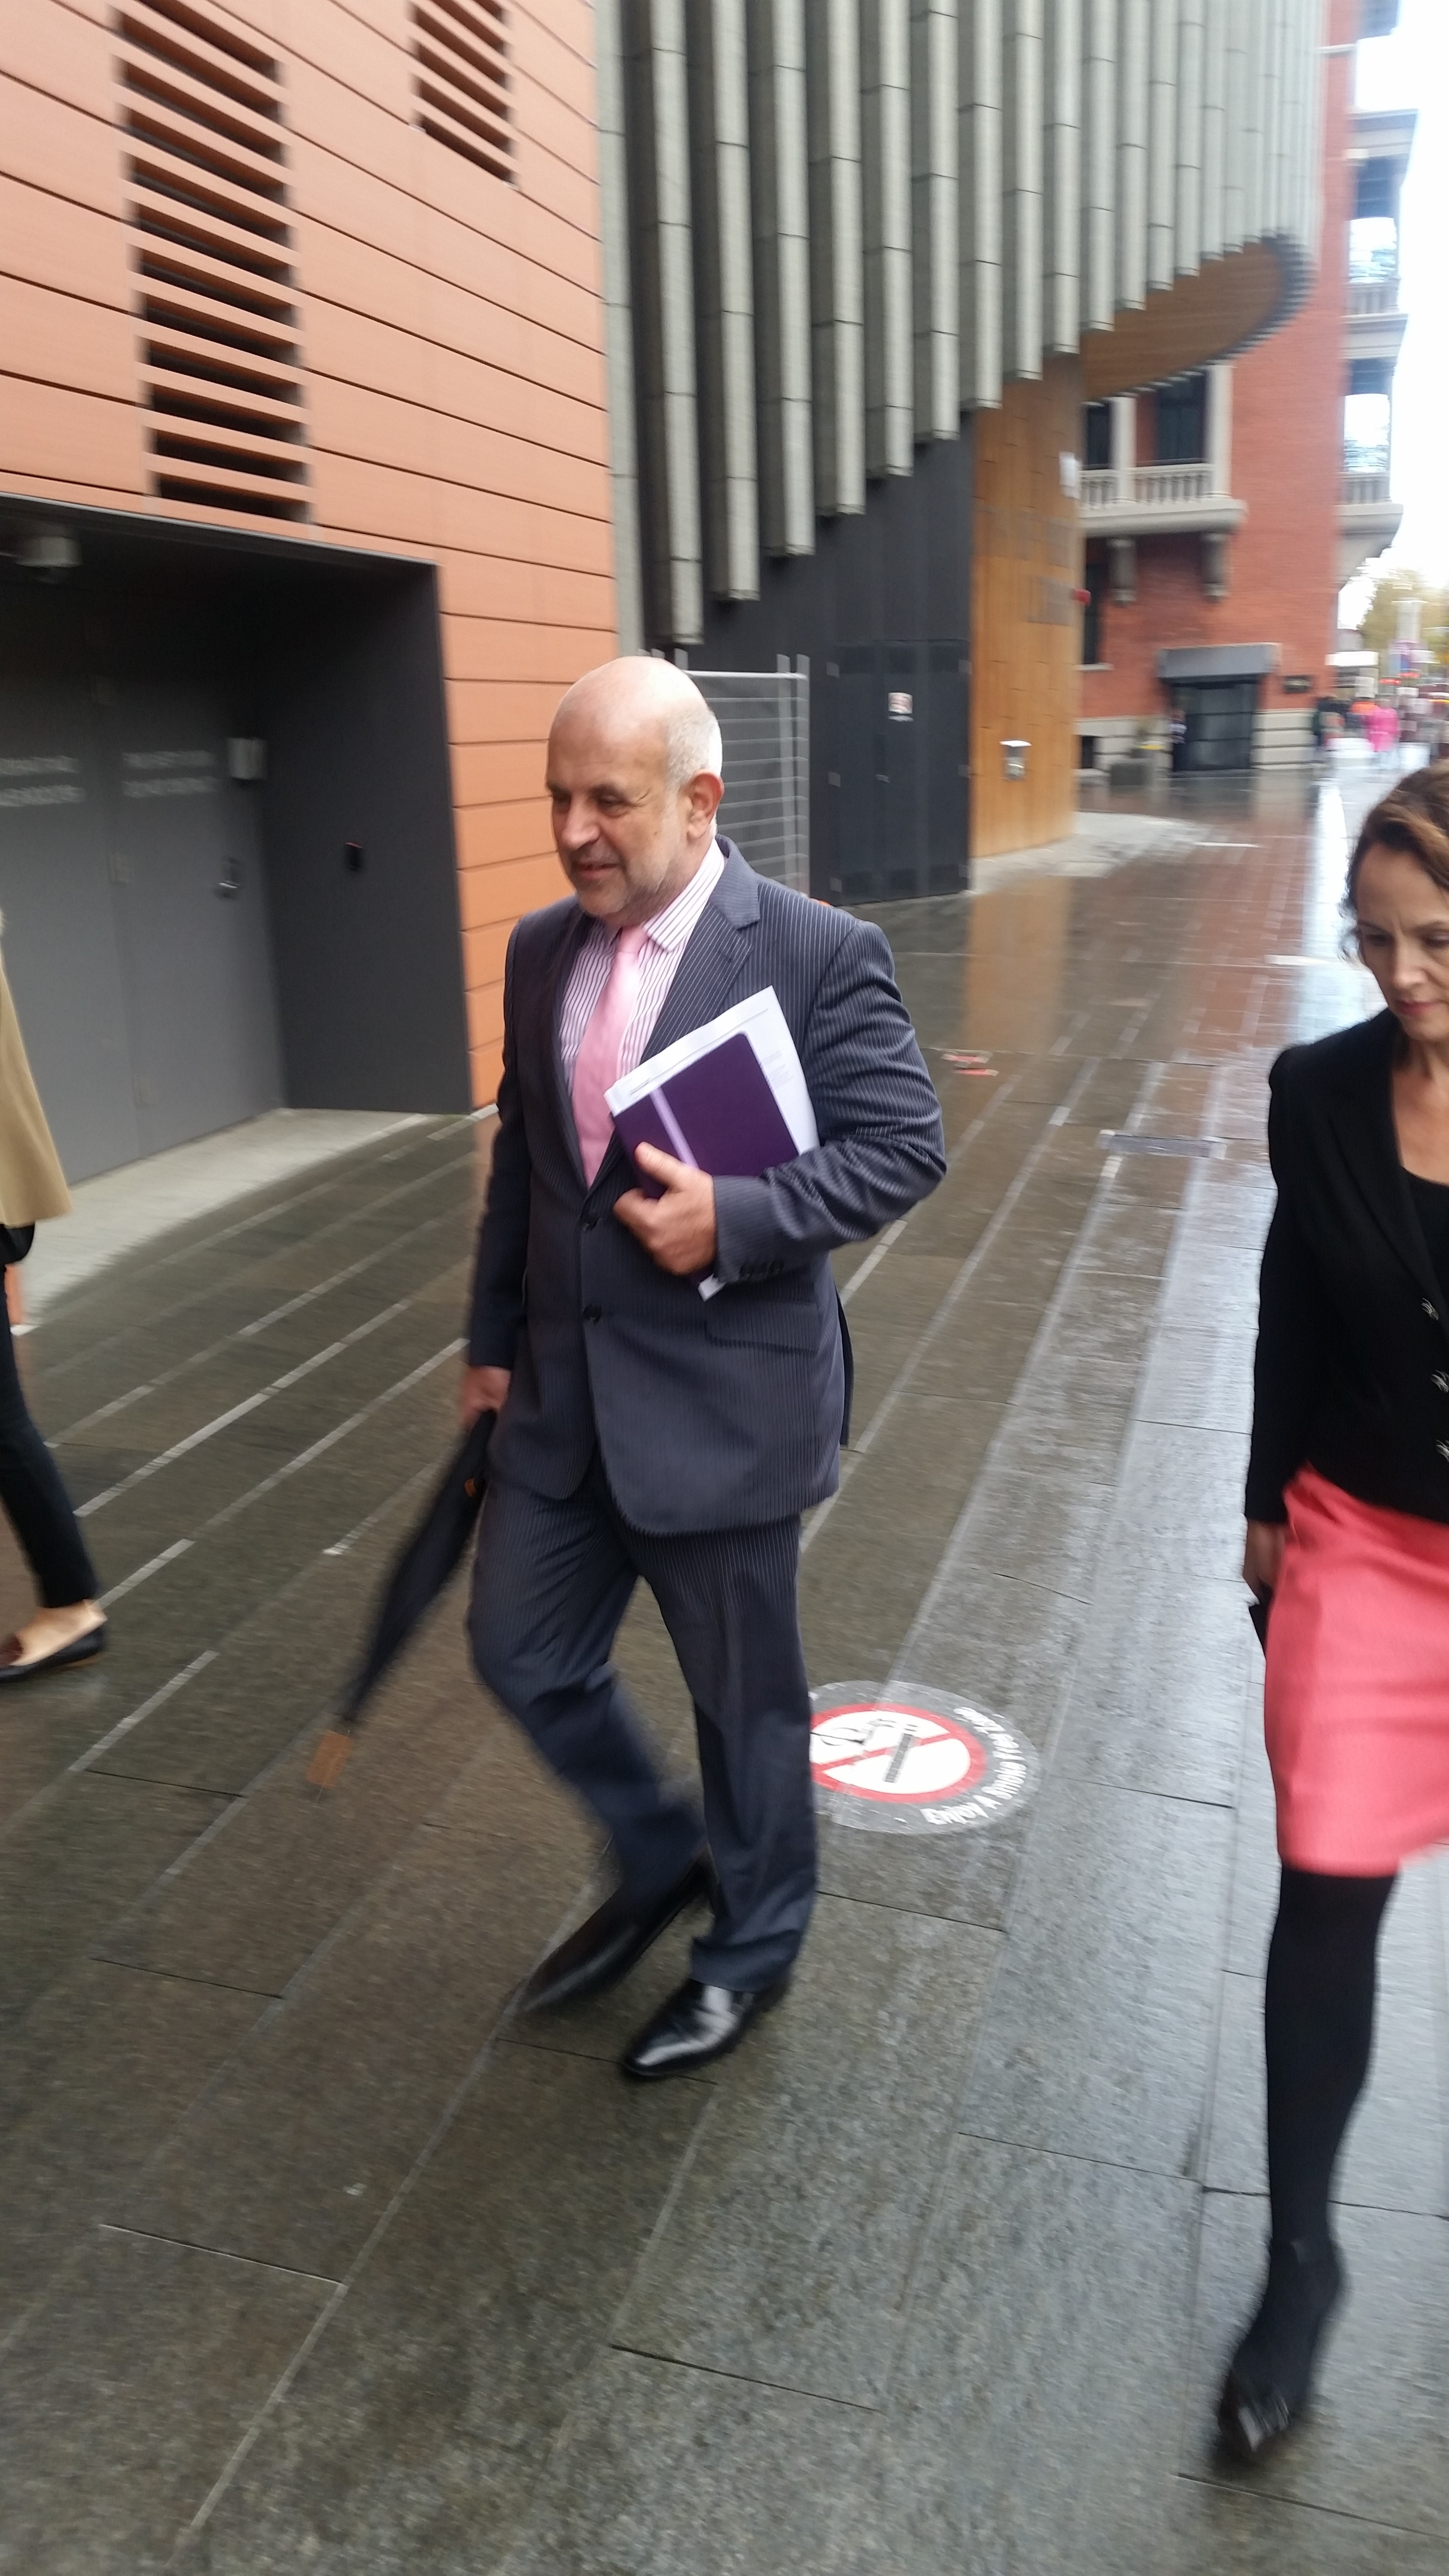 Lisa Scaffidi's lawyer Steven Penglis arrives at the State Administrative Tribunal for day two of the Lord Mayor's penalty hearing. Picture: Giovanni Torre